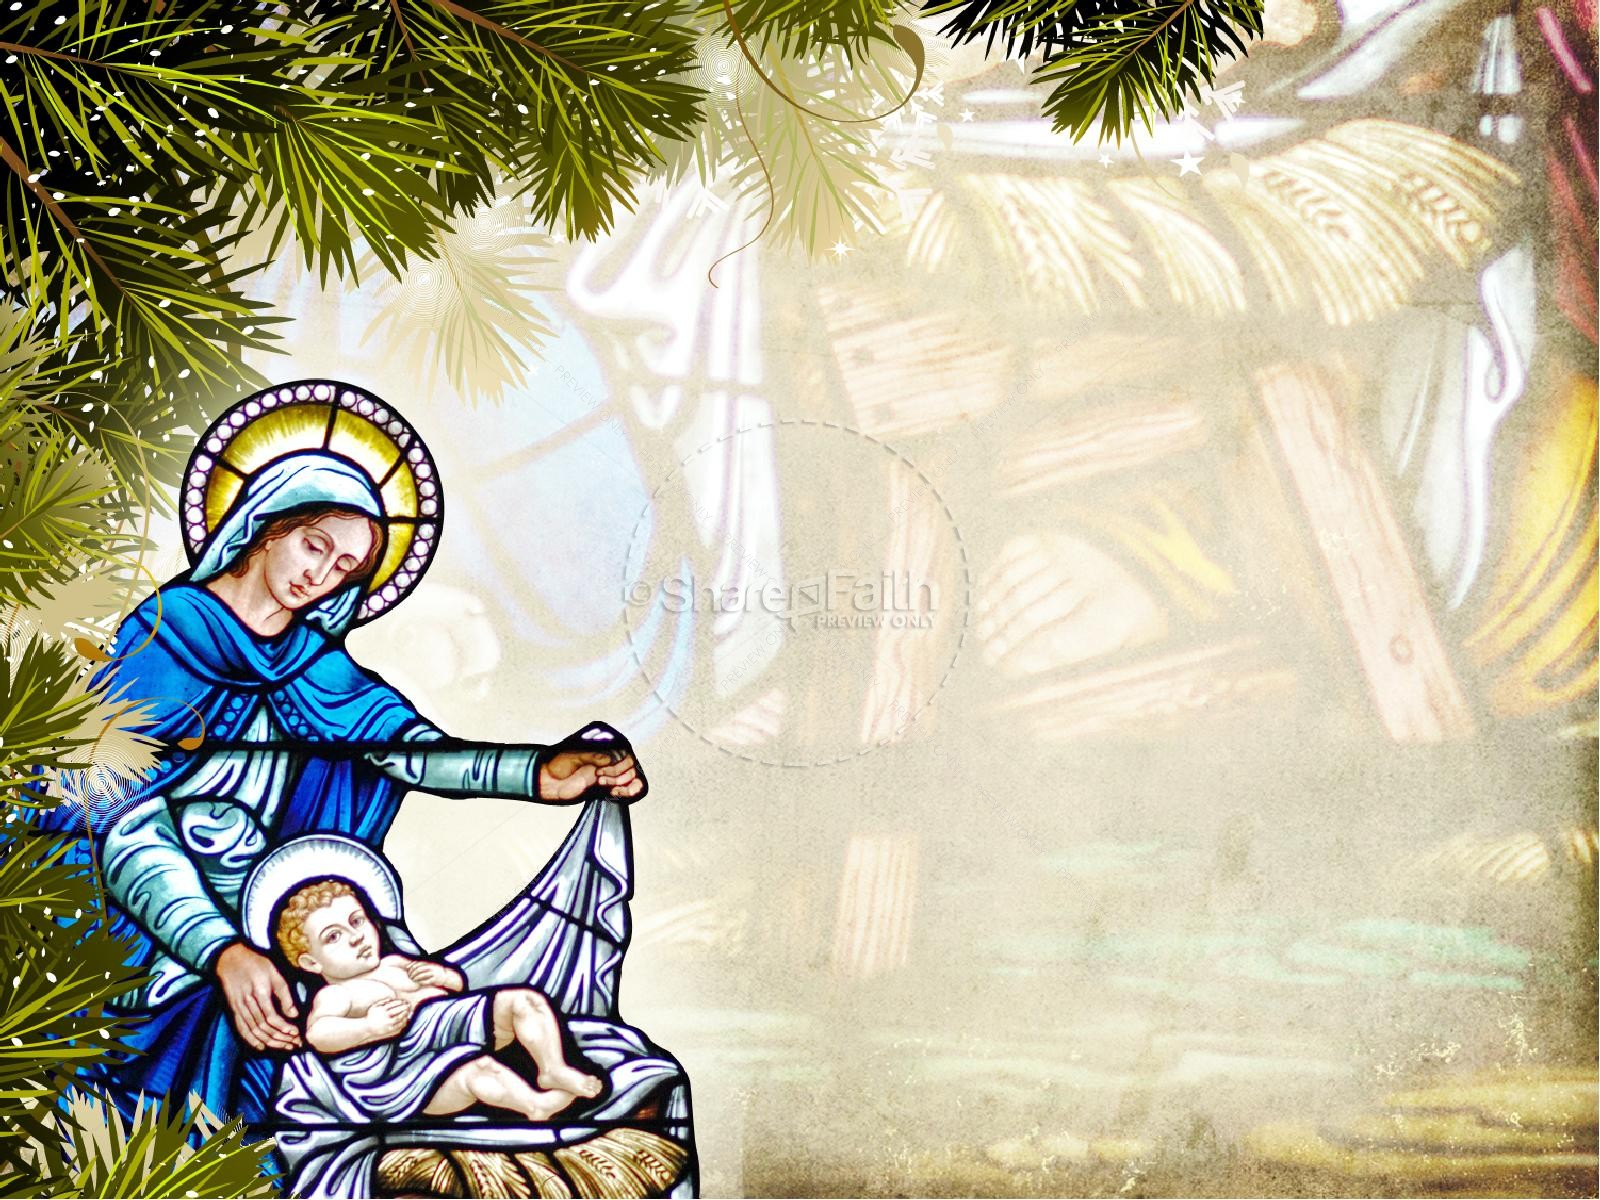 baby jesus wallpaper u00b7 u2460